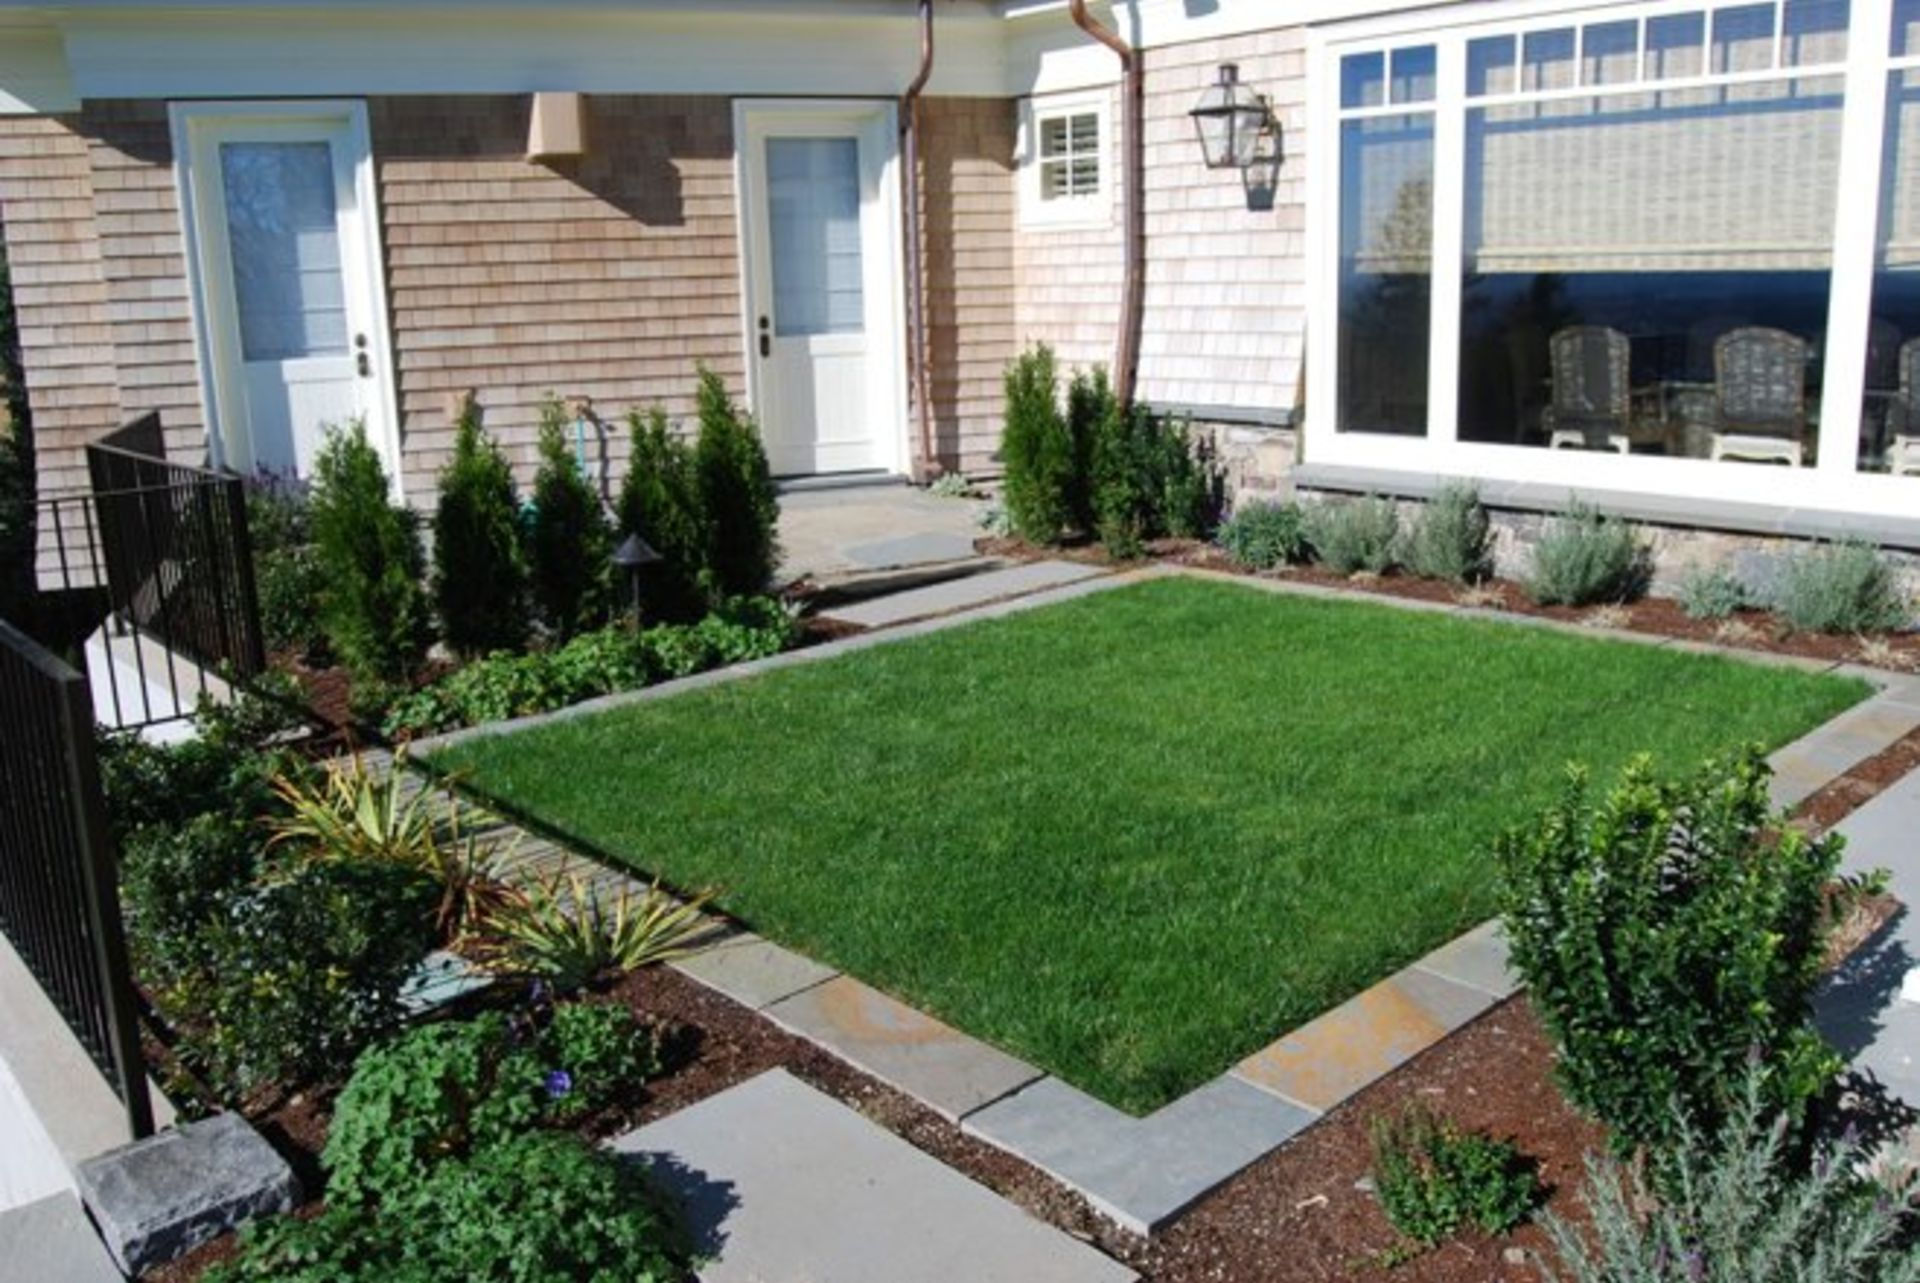 How to Prep Your Ground for a Healthy New Lawn